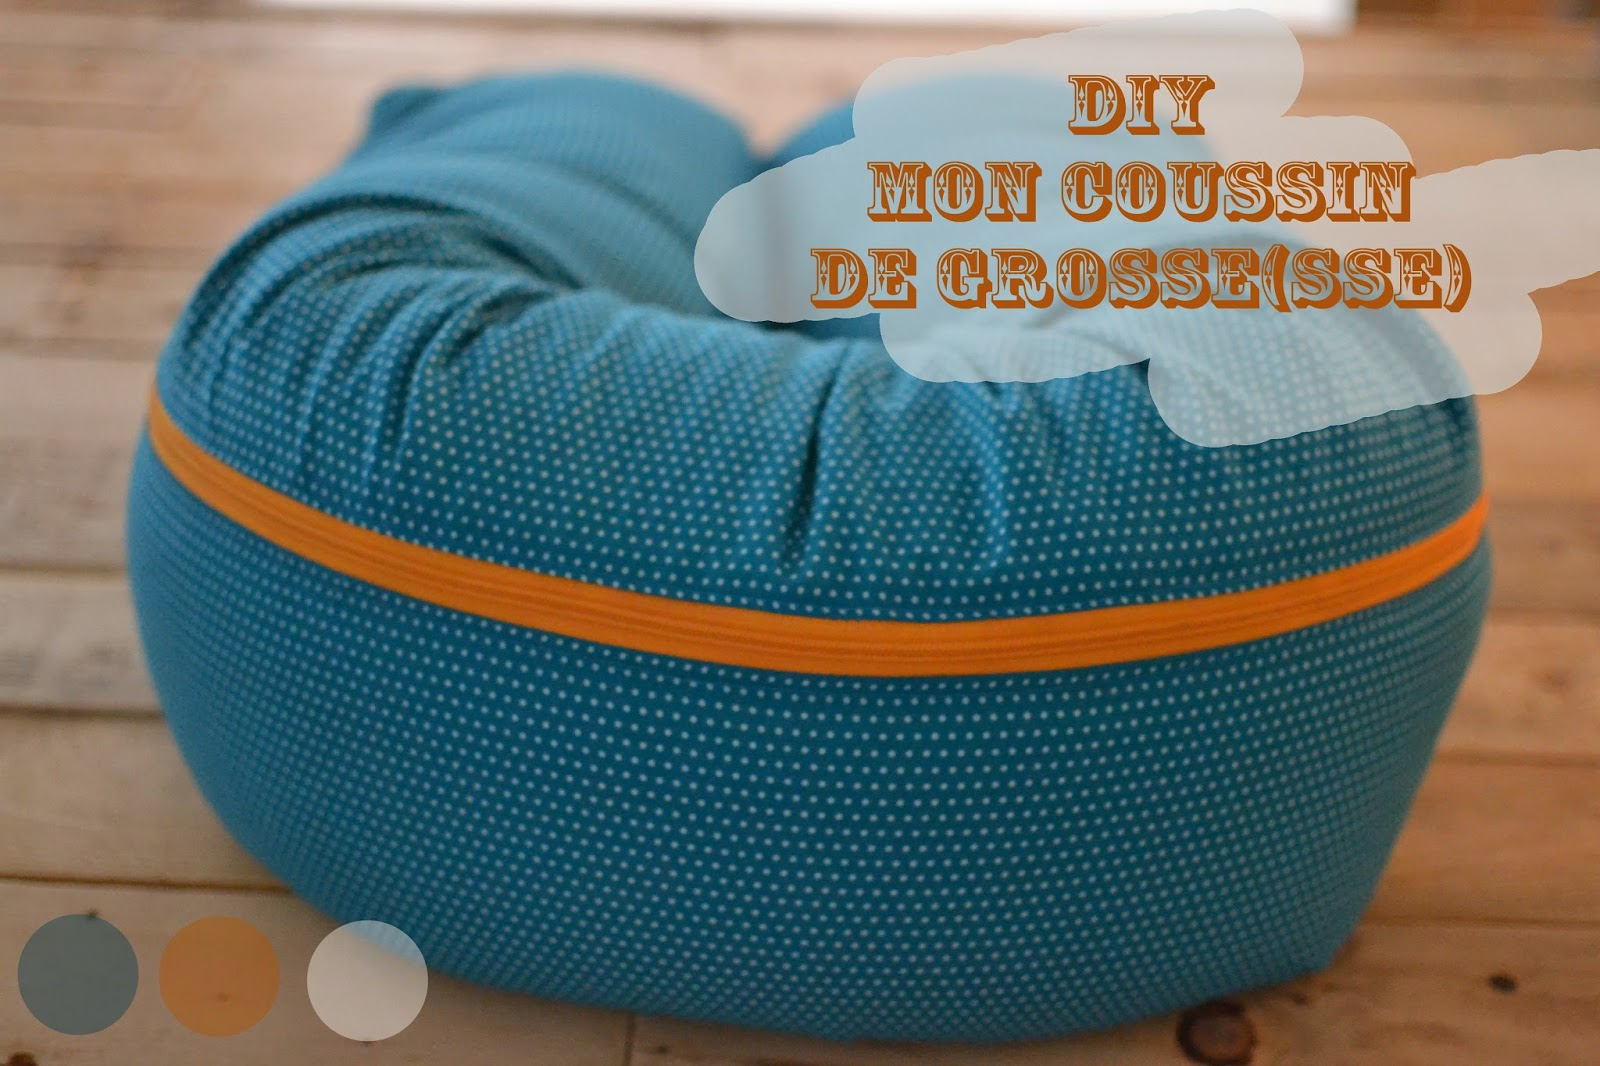 Super DIY Coussin de grosse(sse) – HOMEMADE PERRINPIMPIM FV94